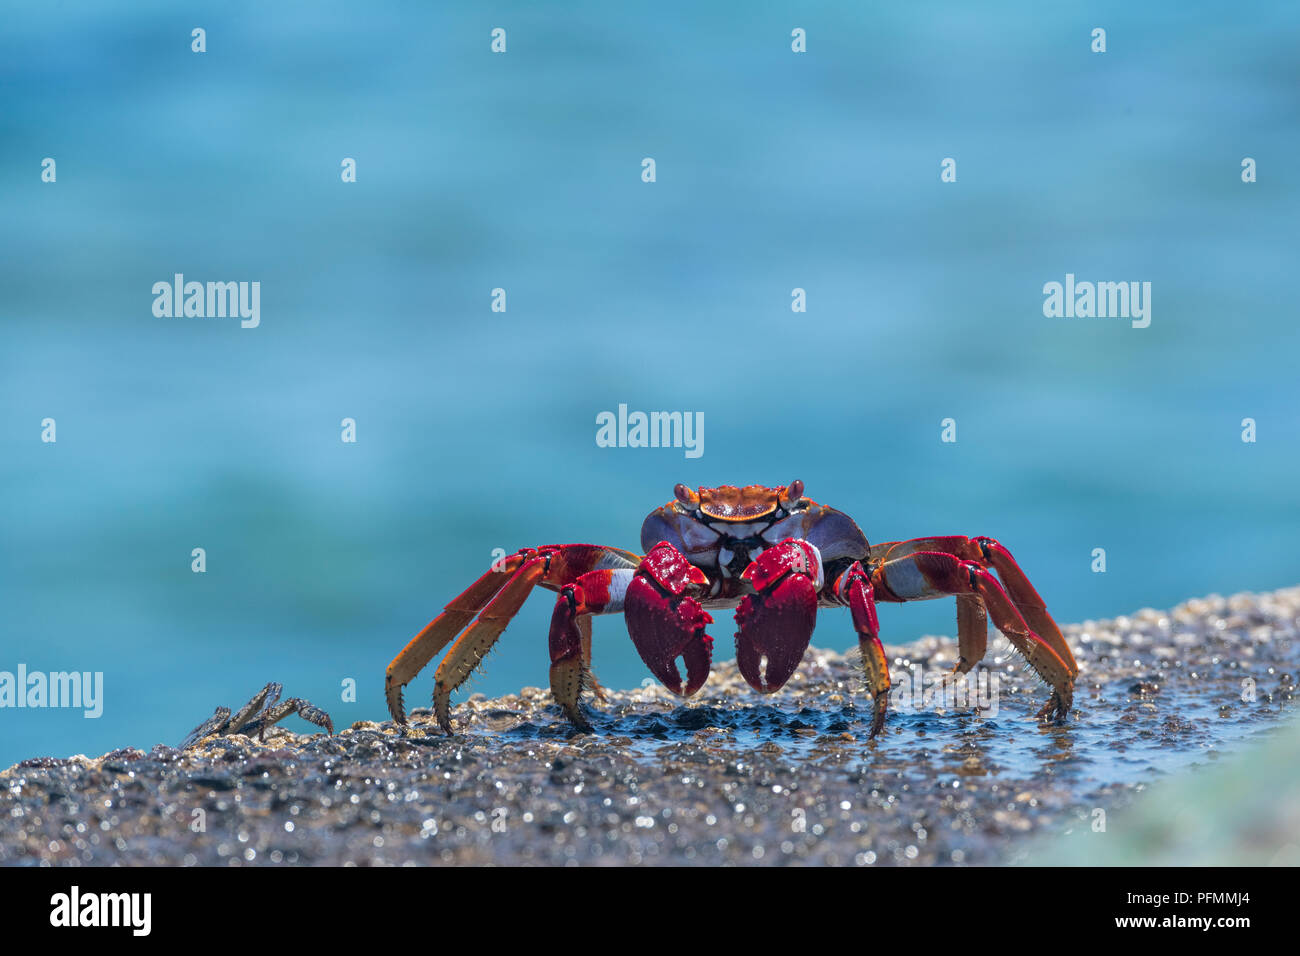 Red rock crab (Grapsus adscensionis) on wet rock, Tenerife, Canary Islands, Spain Stock Photo